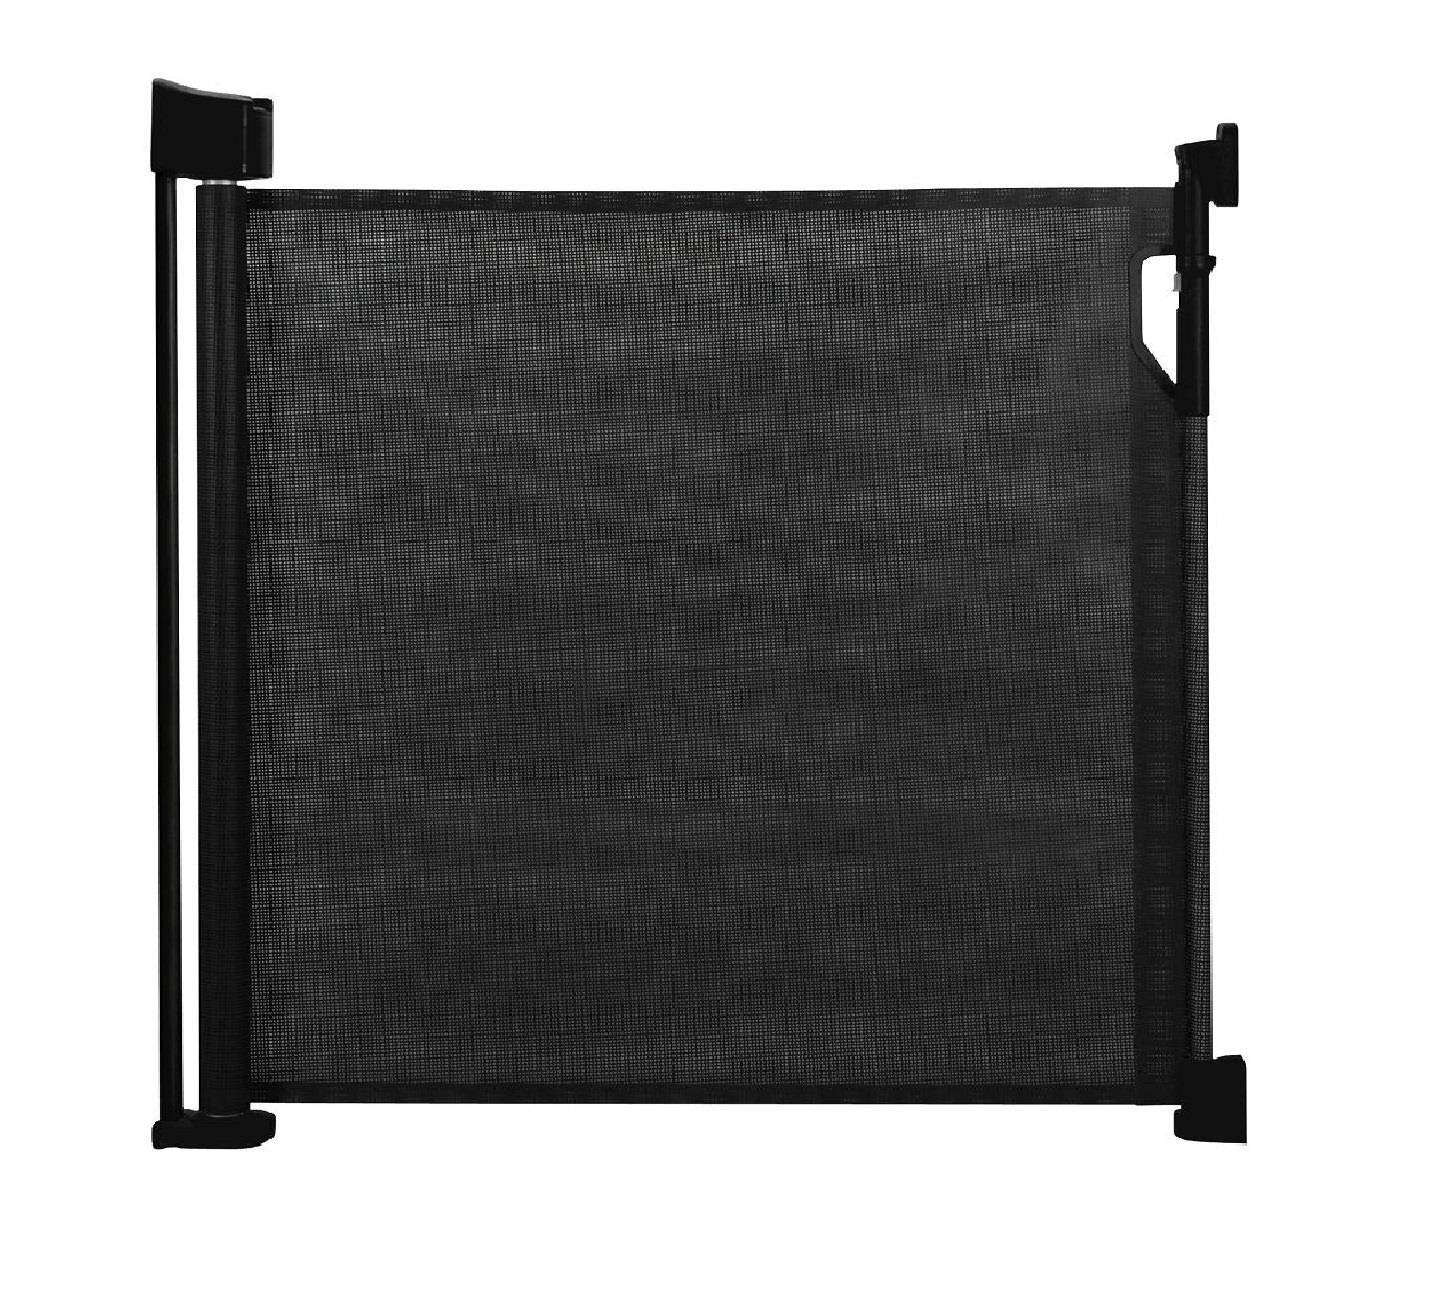 Bettacare Advanced Retractable Pet Gate (60cm - 140cm, Black) Bettacare comes in two sizes 90cm tall and upto 120cm wide, or 95cm tall and upto 140cm wide Screw fitted mesh barrier with steel frame. Easy to follow installation guide with template for perfect fit One-handed operation. Retractable gate that fully retracts when not in use 2